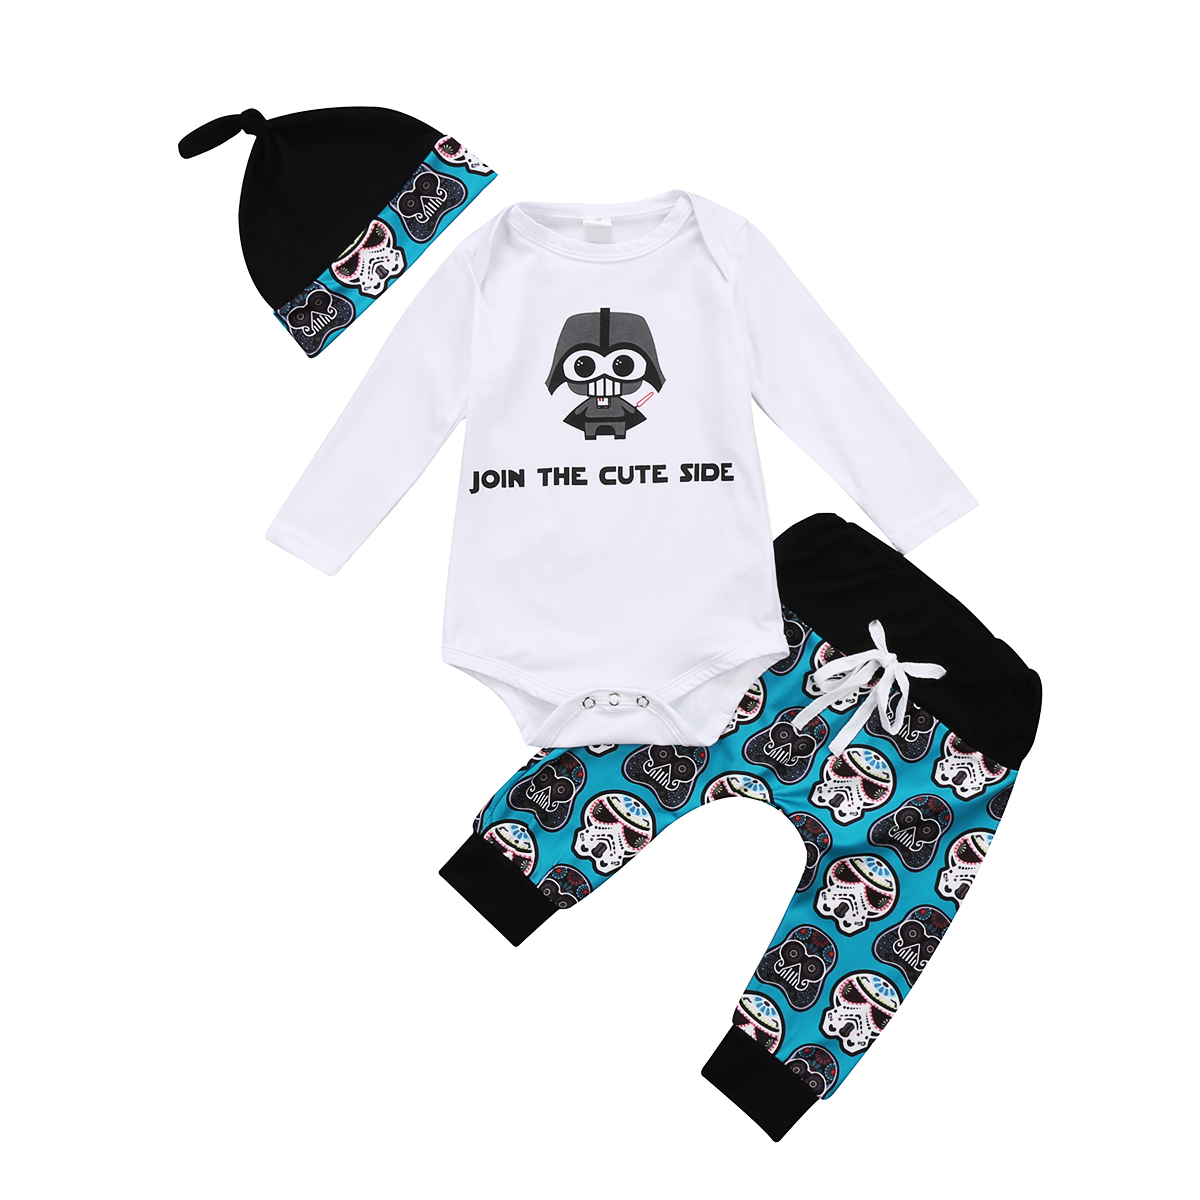 a4c92443b 0 18M Toddler Newborn Baby Boys 2017 Romper Long Sleeves Anime Top+ ...